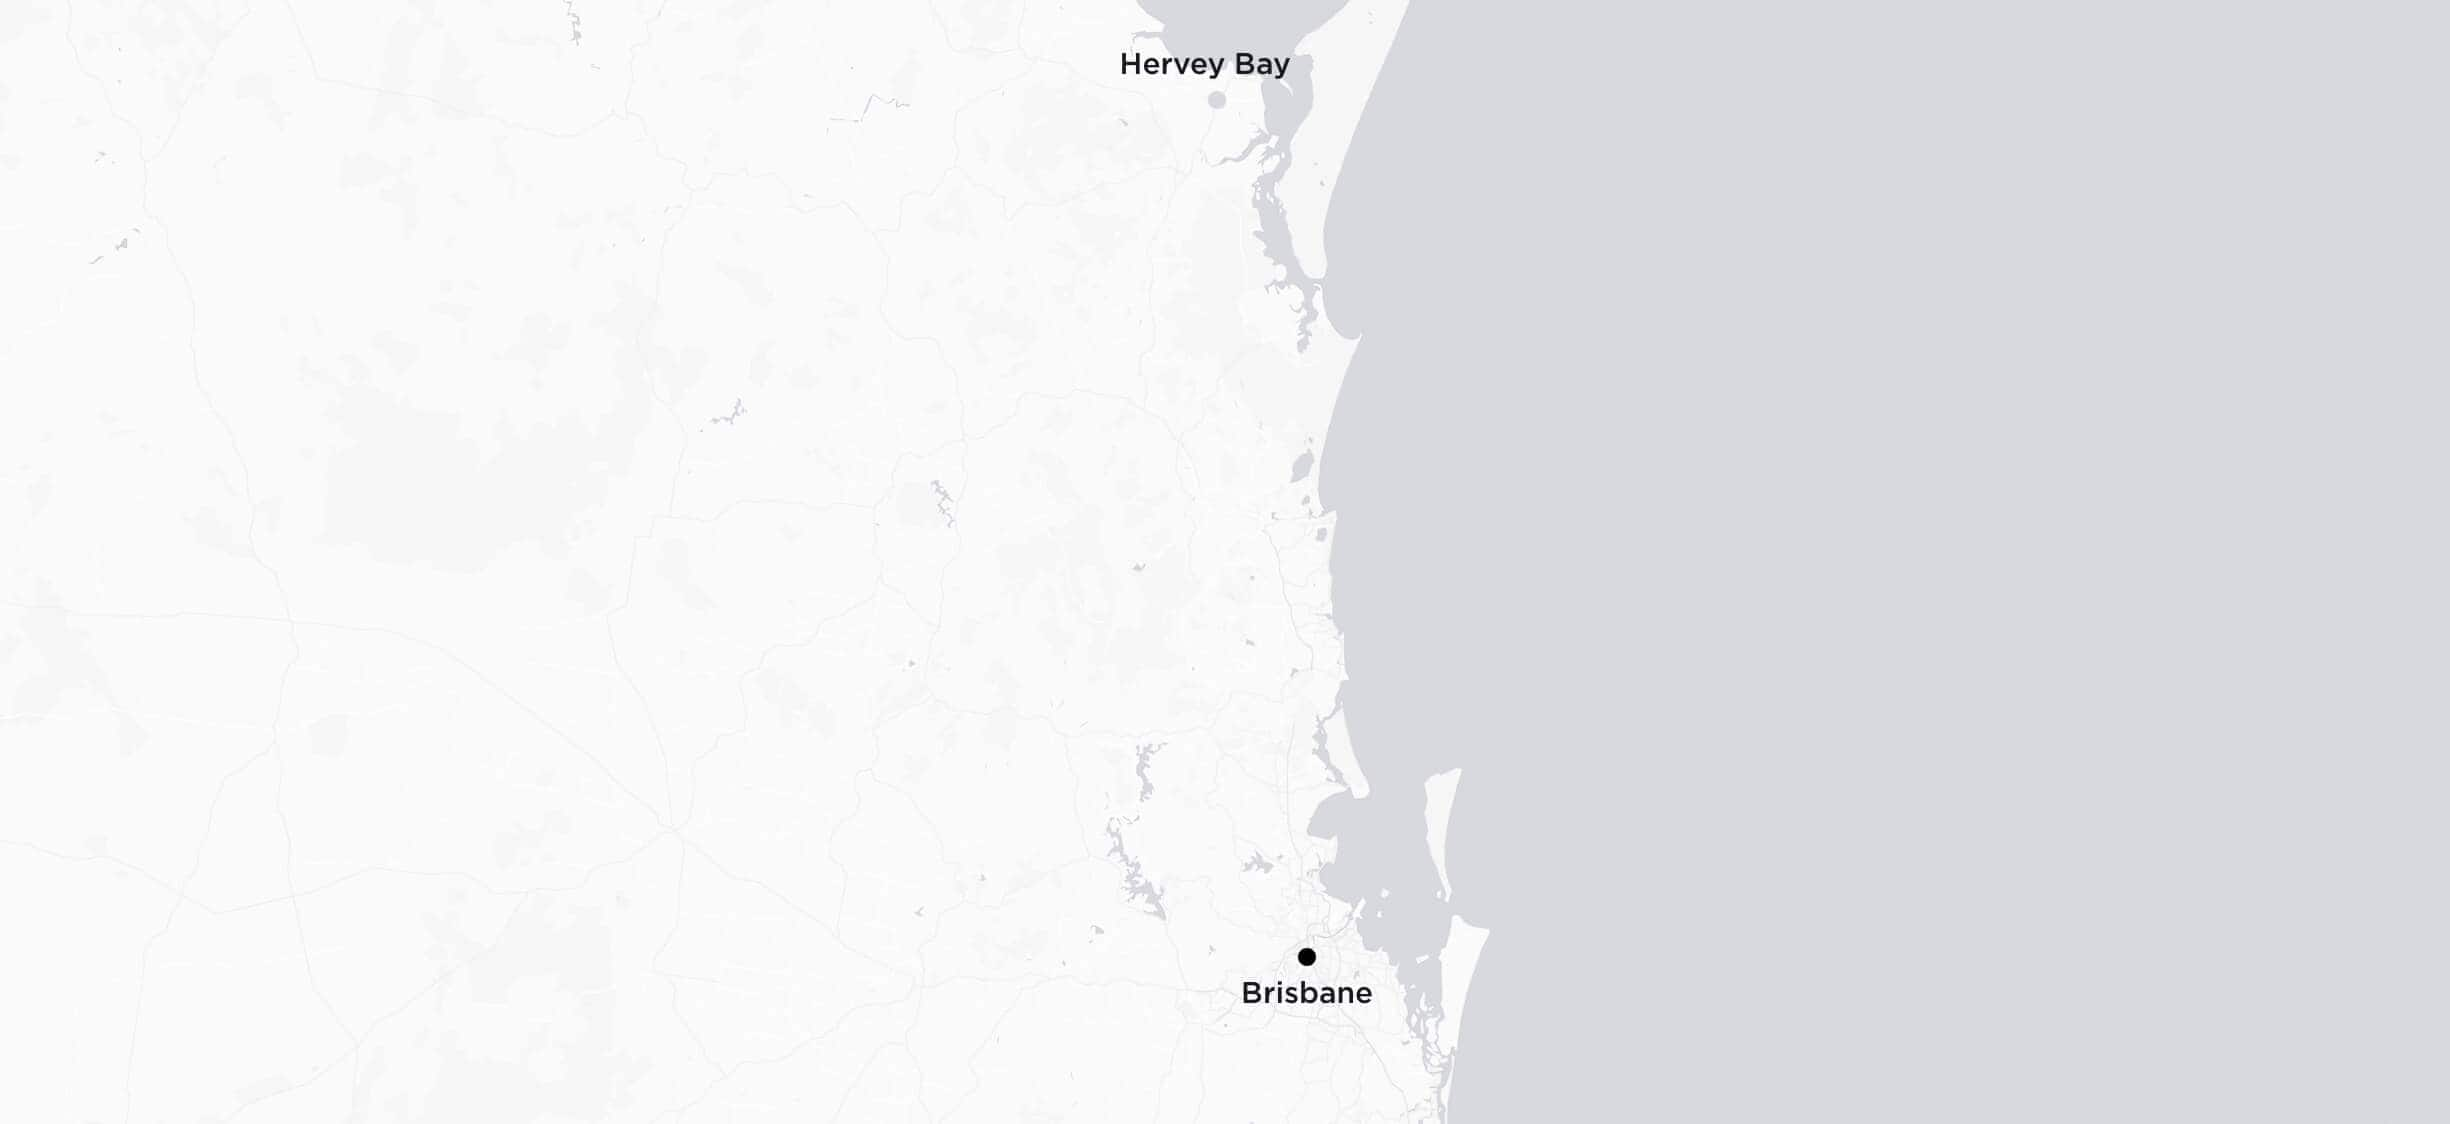 Brisbane to Hervey Bay